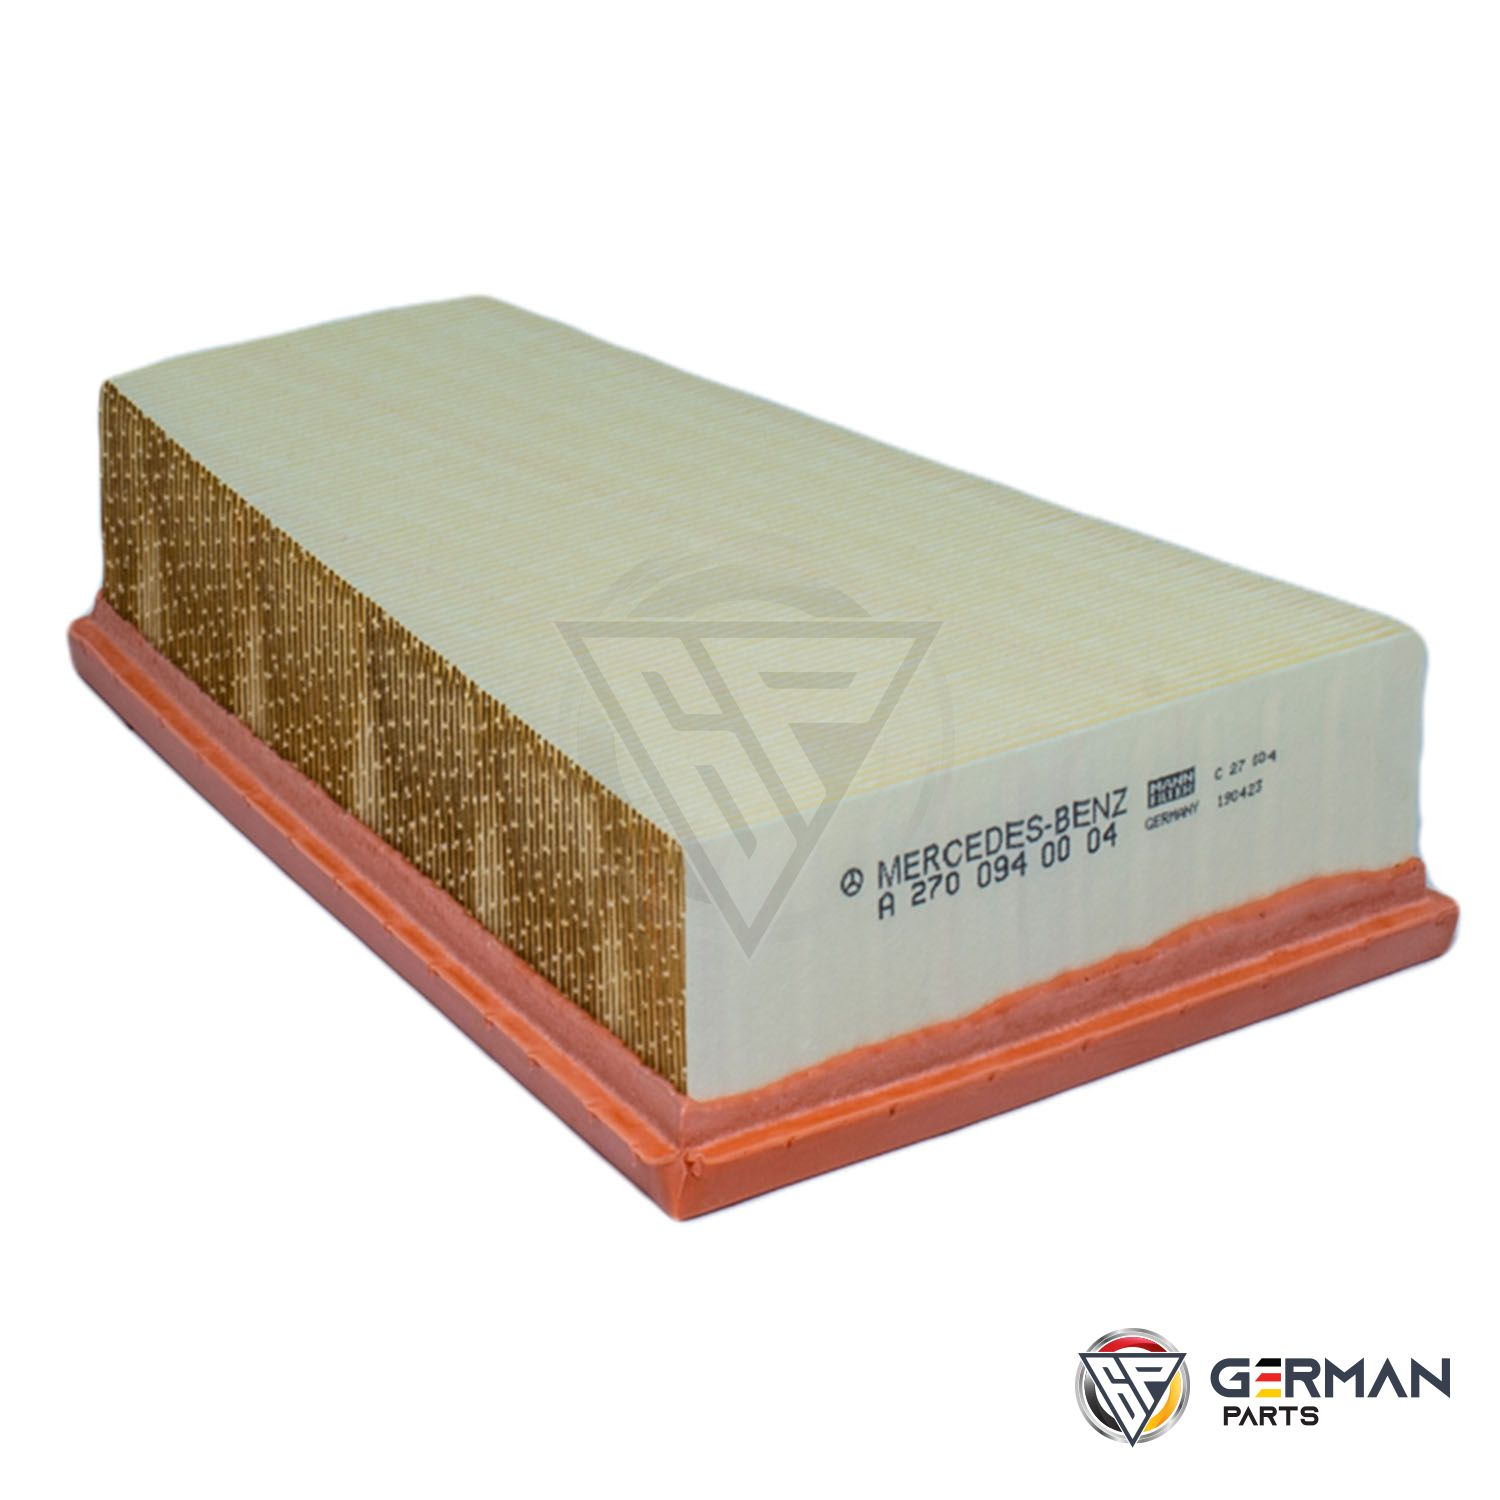 Buy Genuine Mercedes Benz Air Filter 2700940004 - German Parts